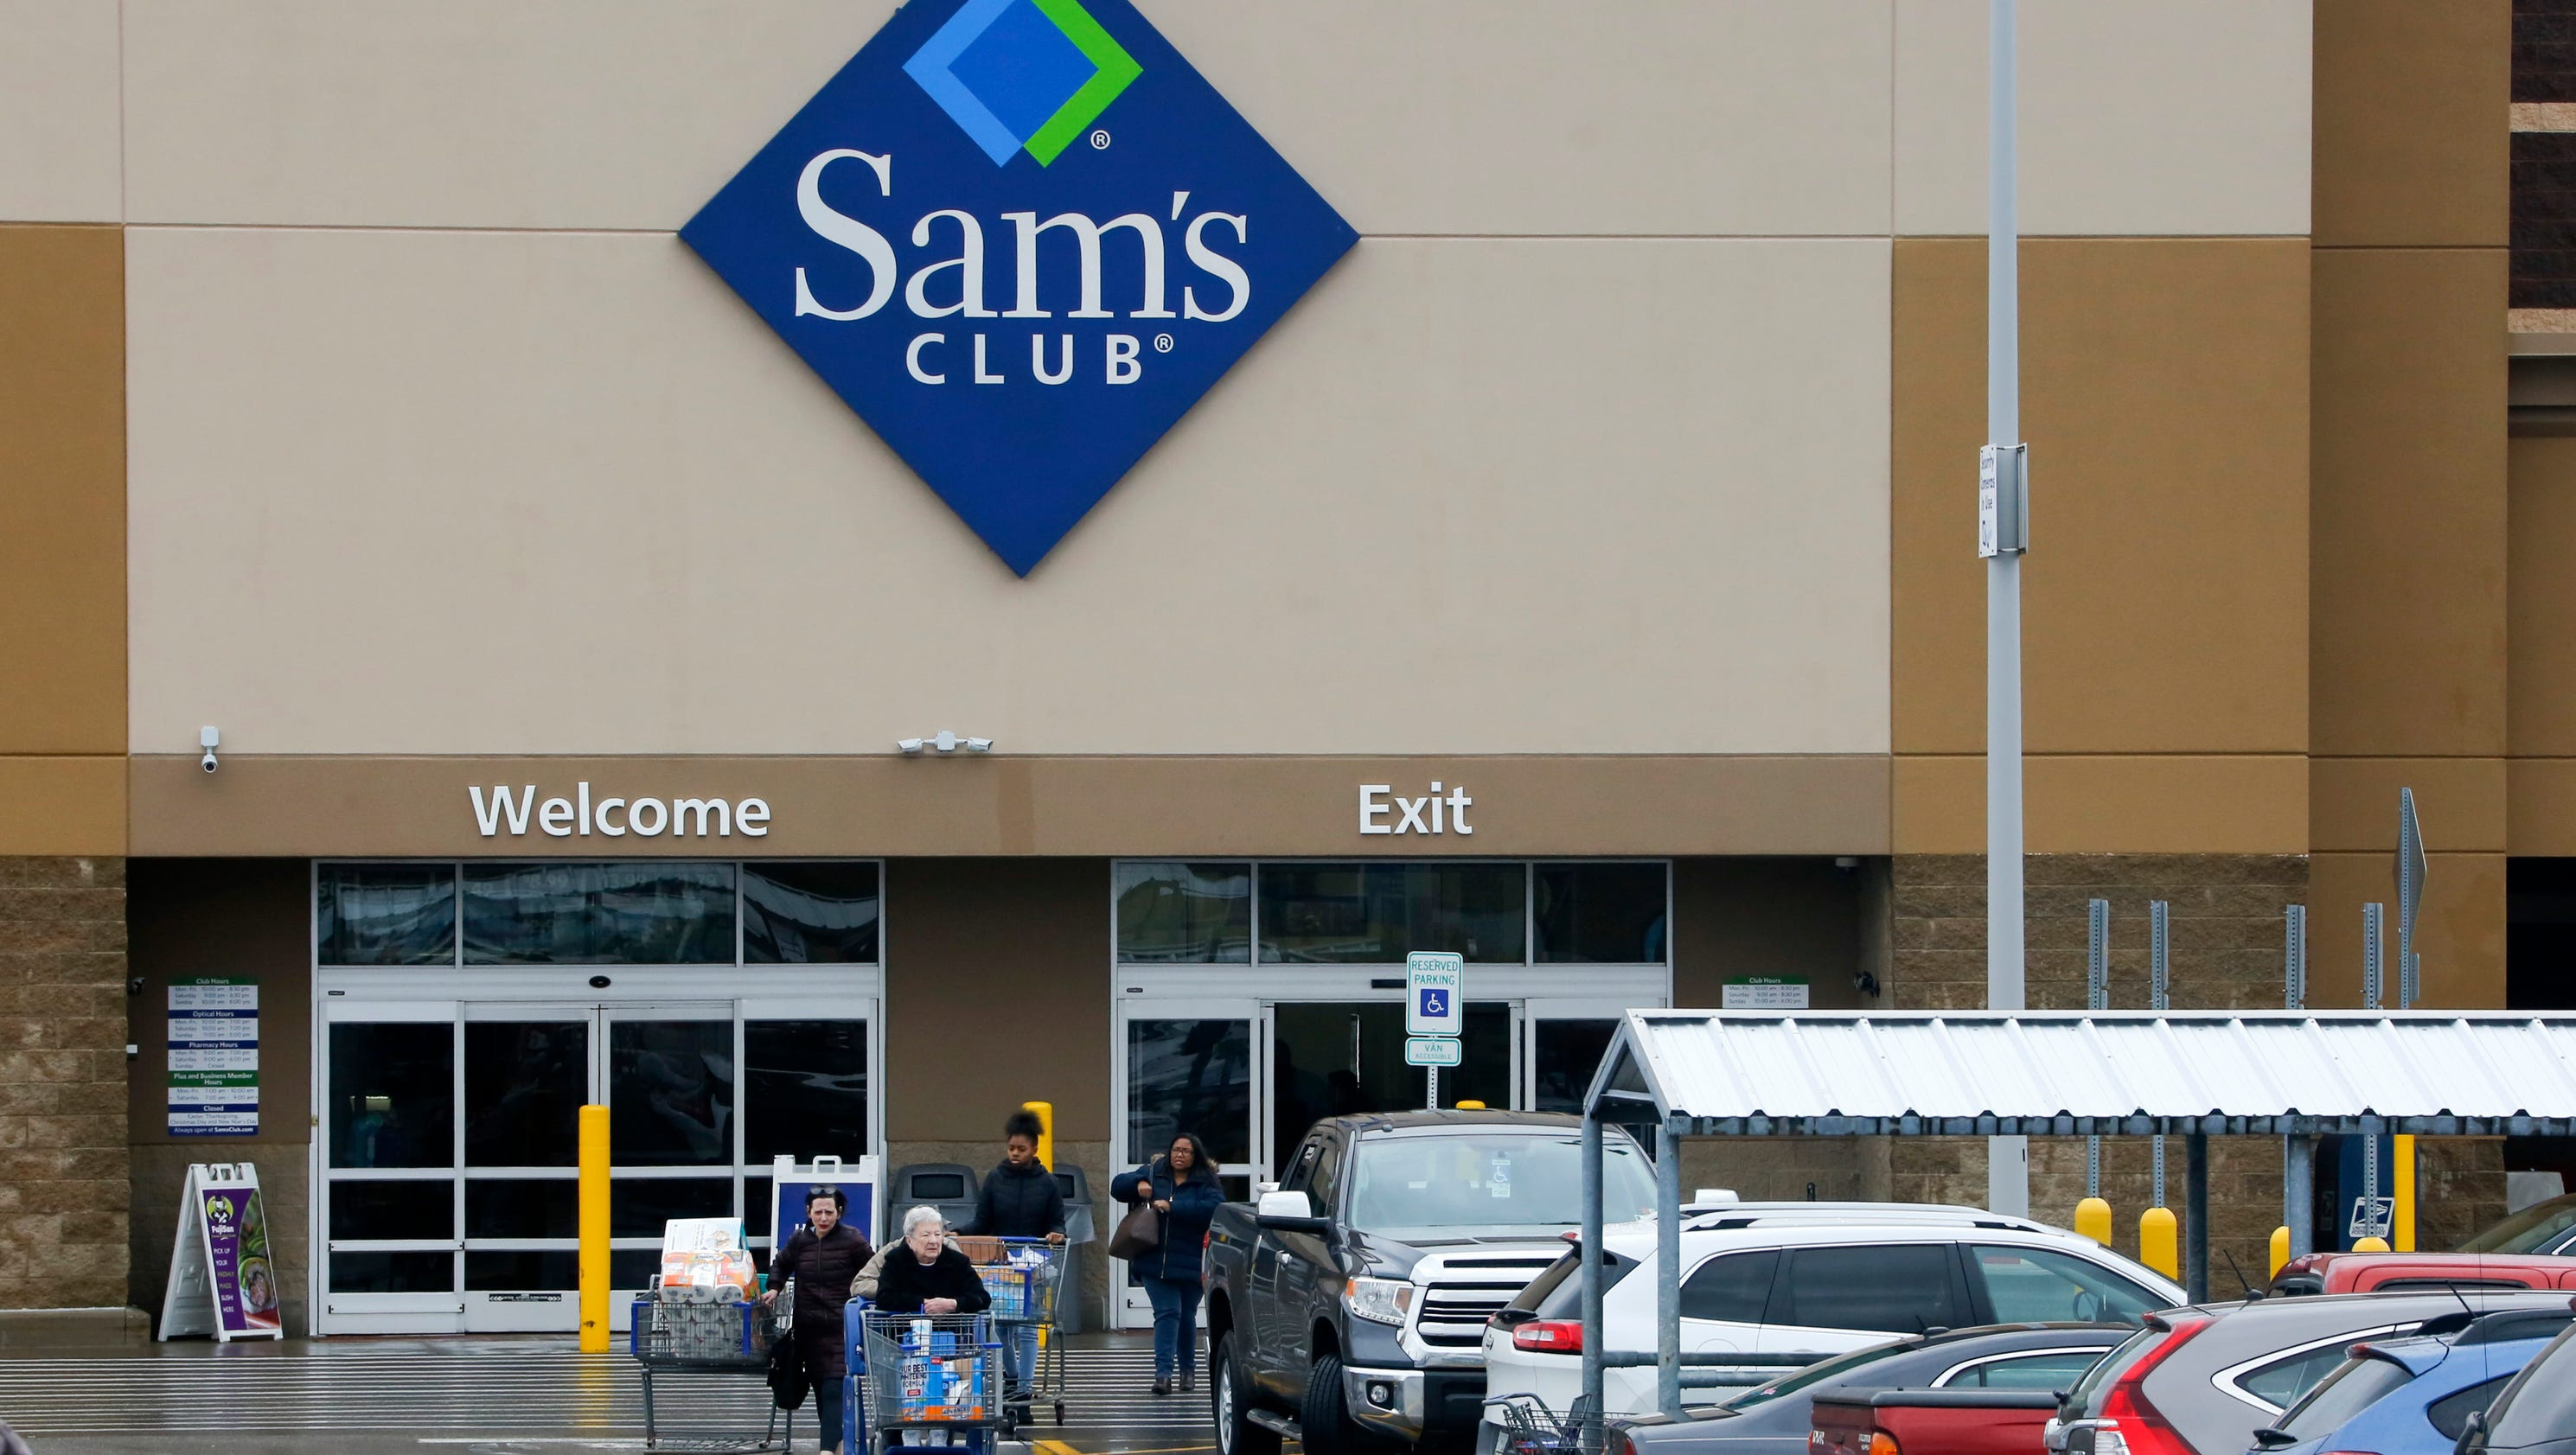 Sam's Club, Instacart team up for same-day home delivery ...